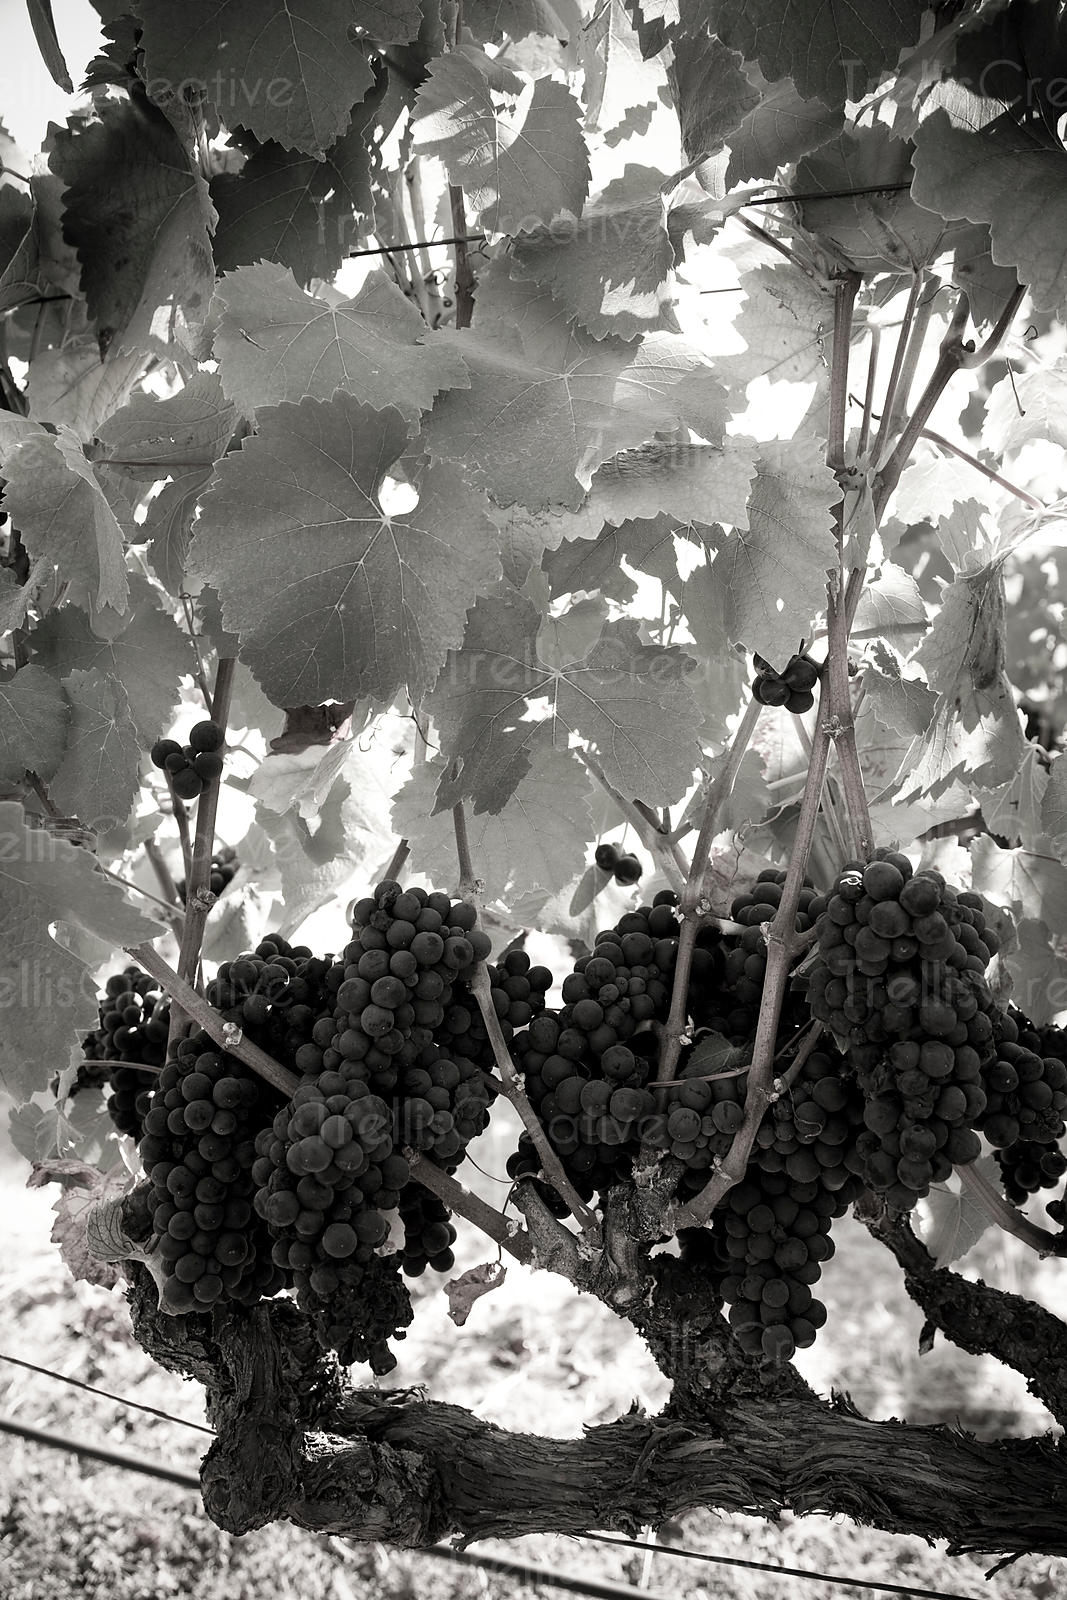 Clusters of ripe pinot noir grapes on the vine